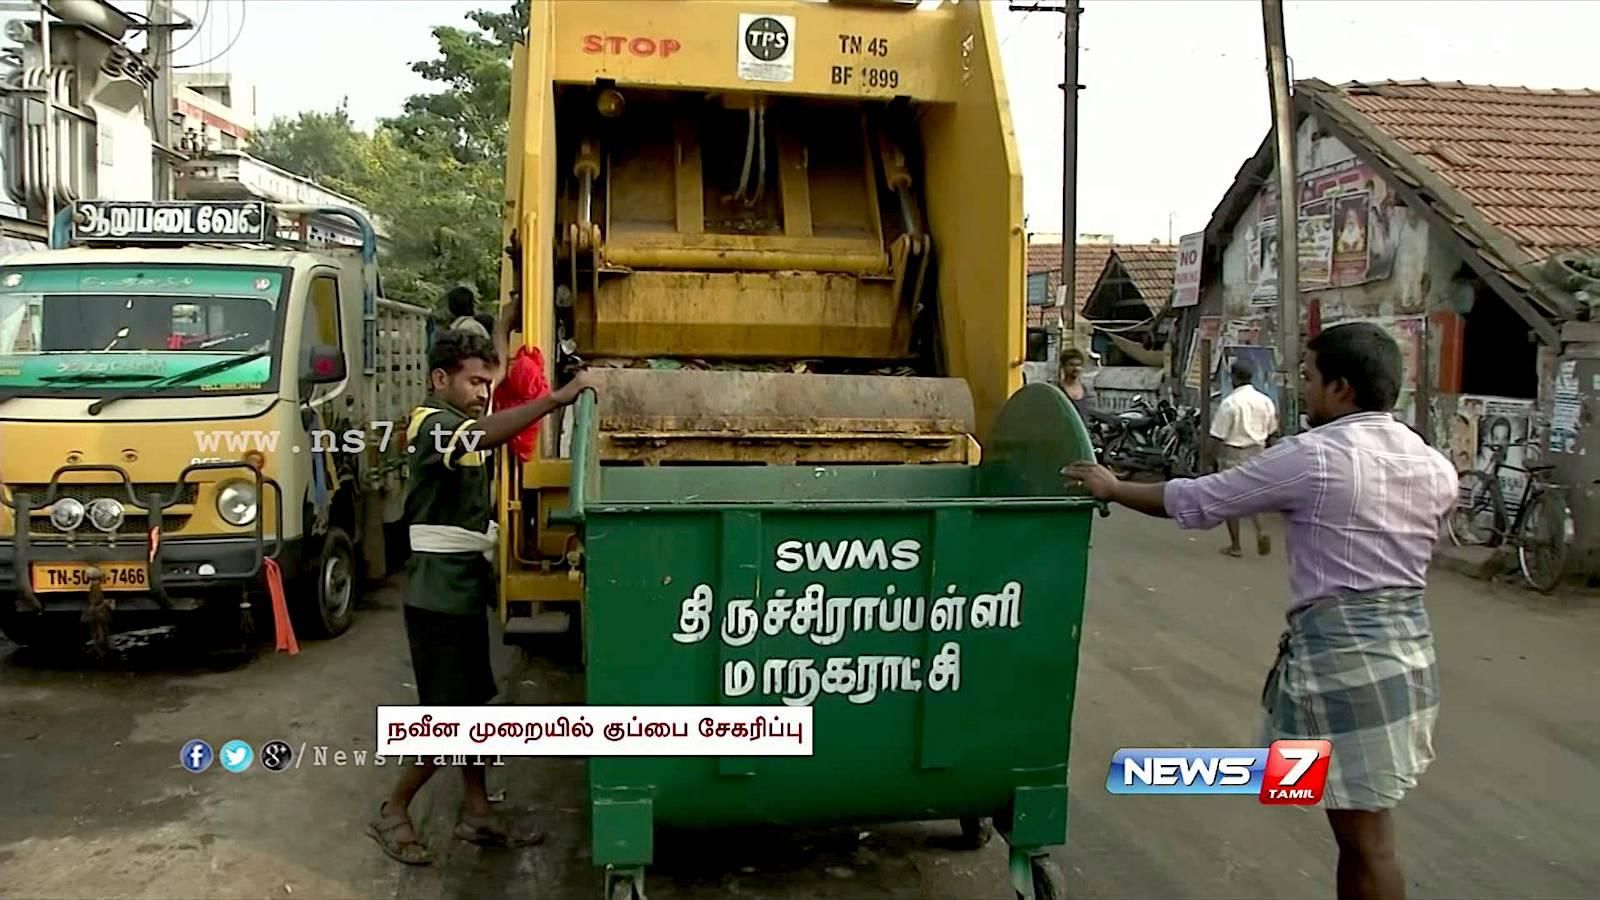 Garbage truck collecting waste in India